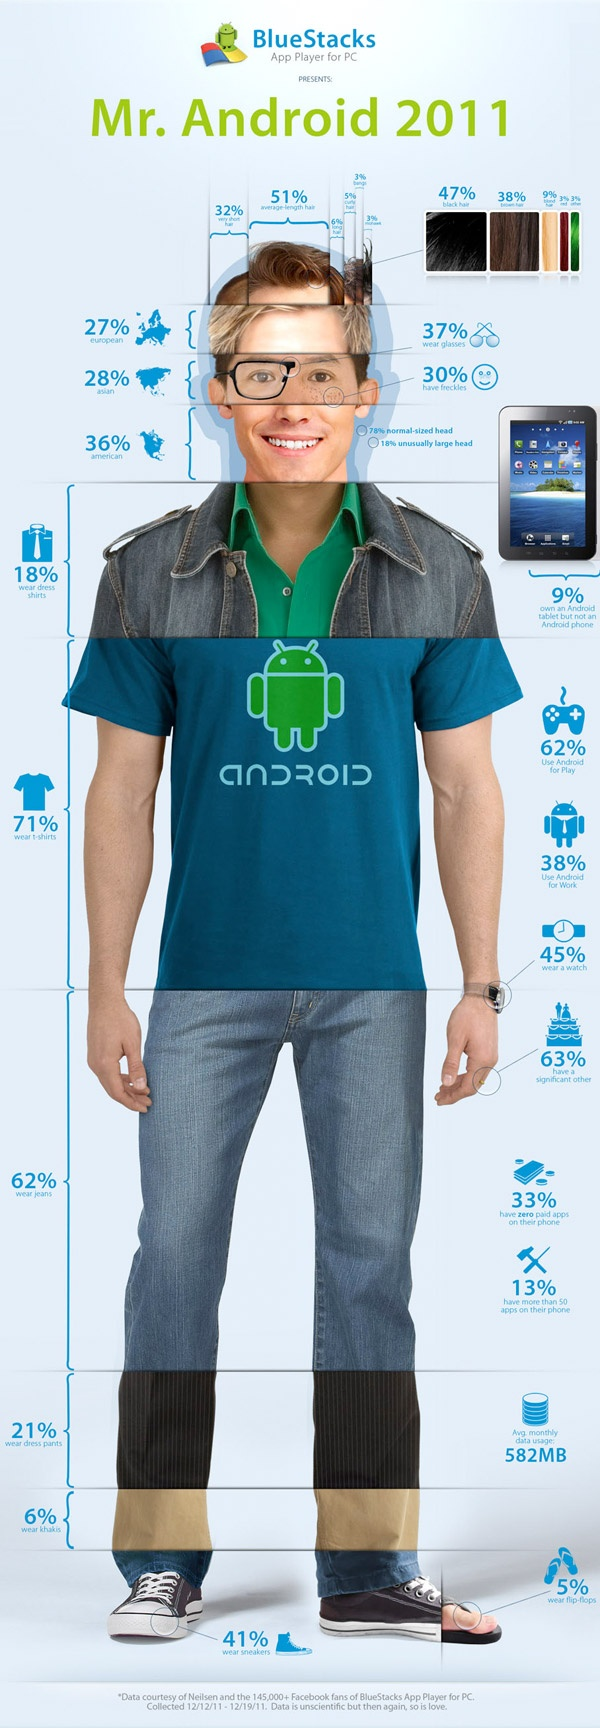 Mr. Android Really is One Massively Geeky Looking Guy